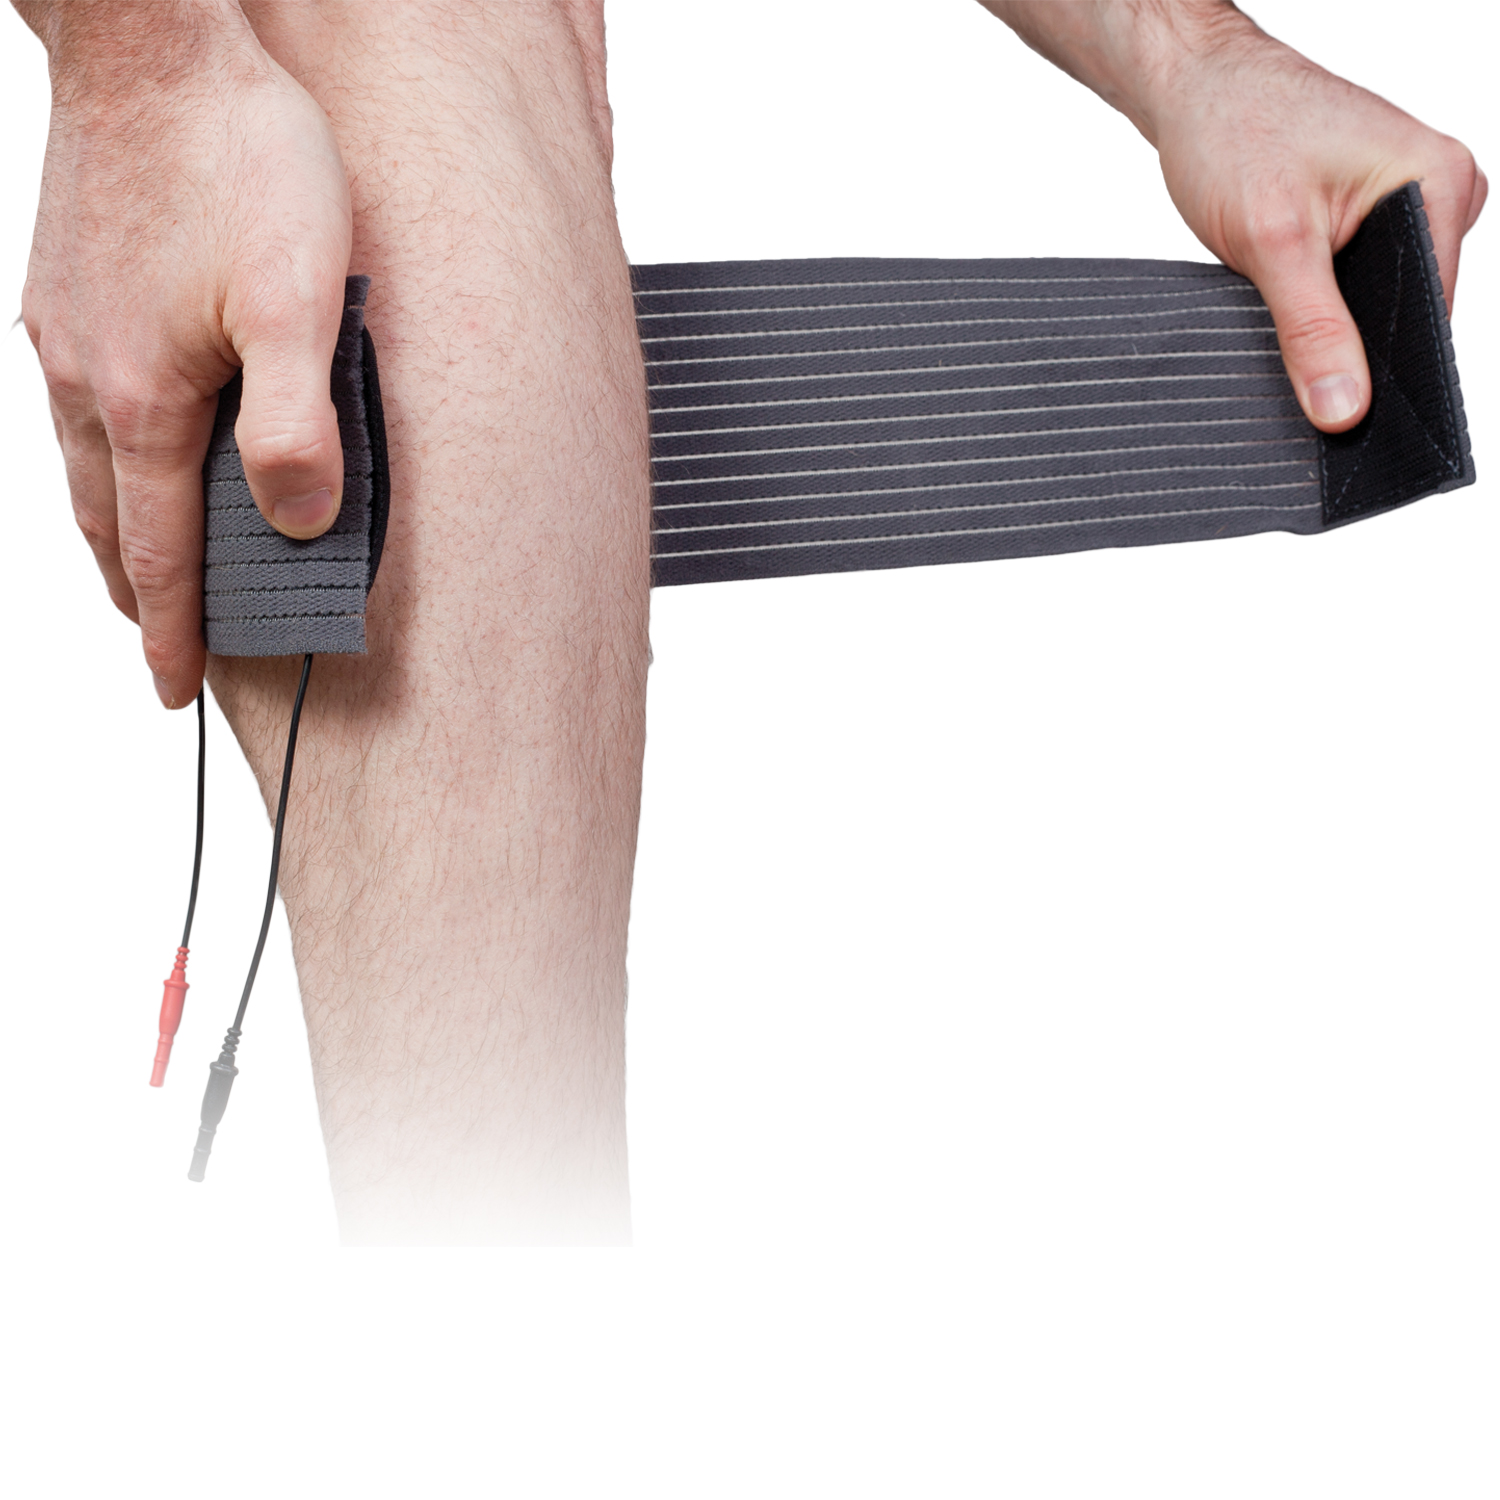 SarcoStim - Lower Extremity Strengthening System for Fall Prevention